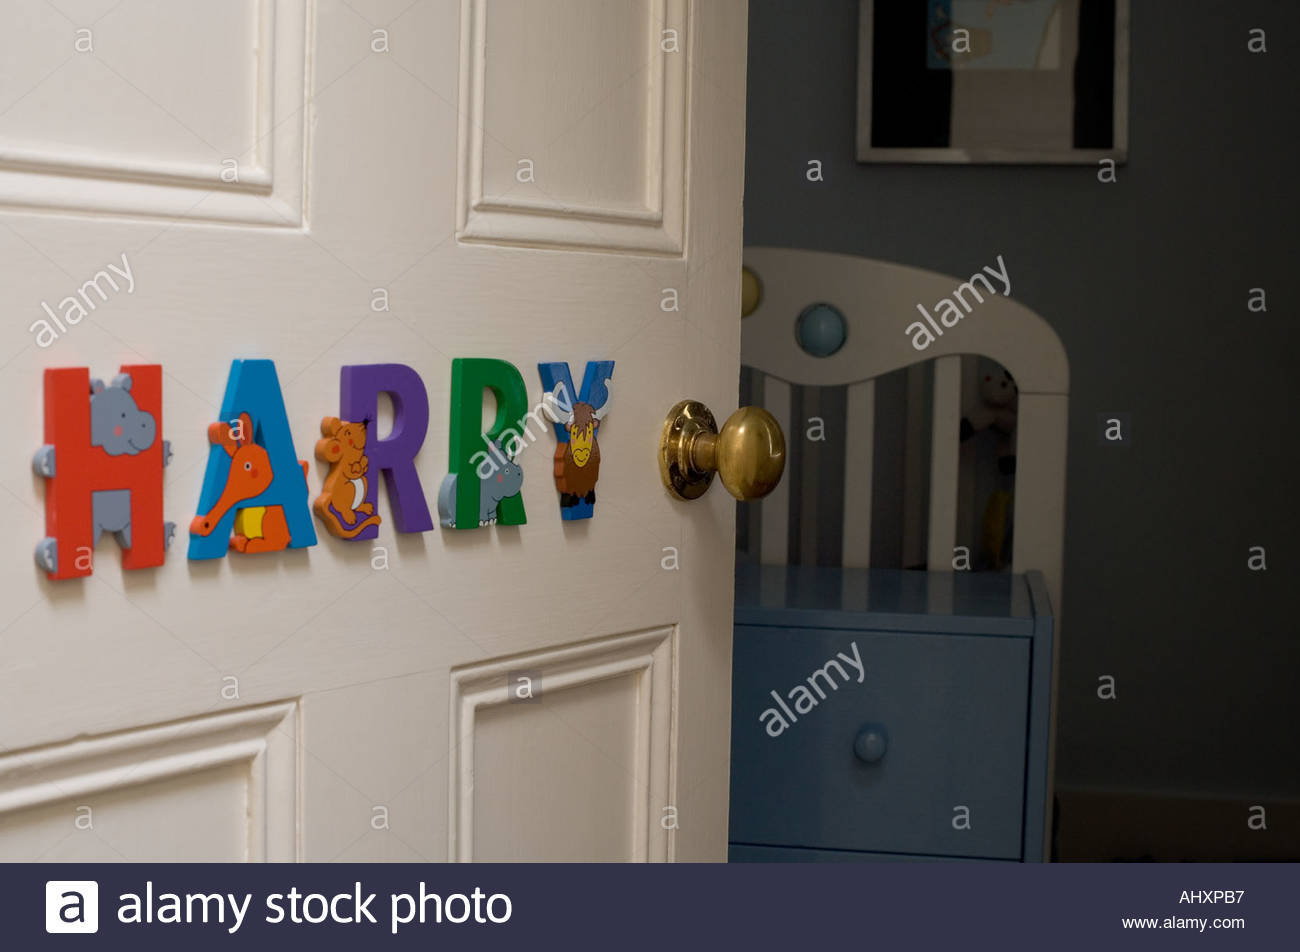 Childs bedroom with name letters on the door and child asleep inside & Childs bedroom with name letters on the door and child asleep inside ...